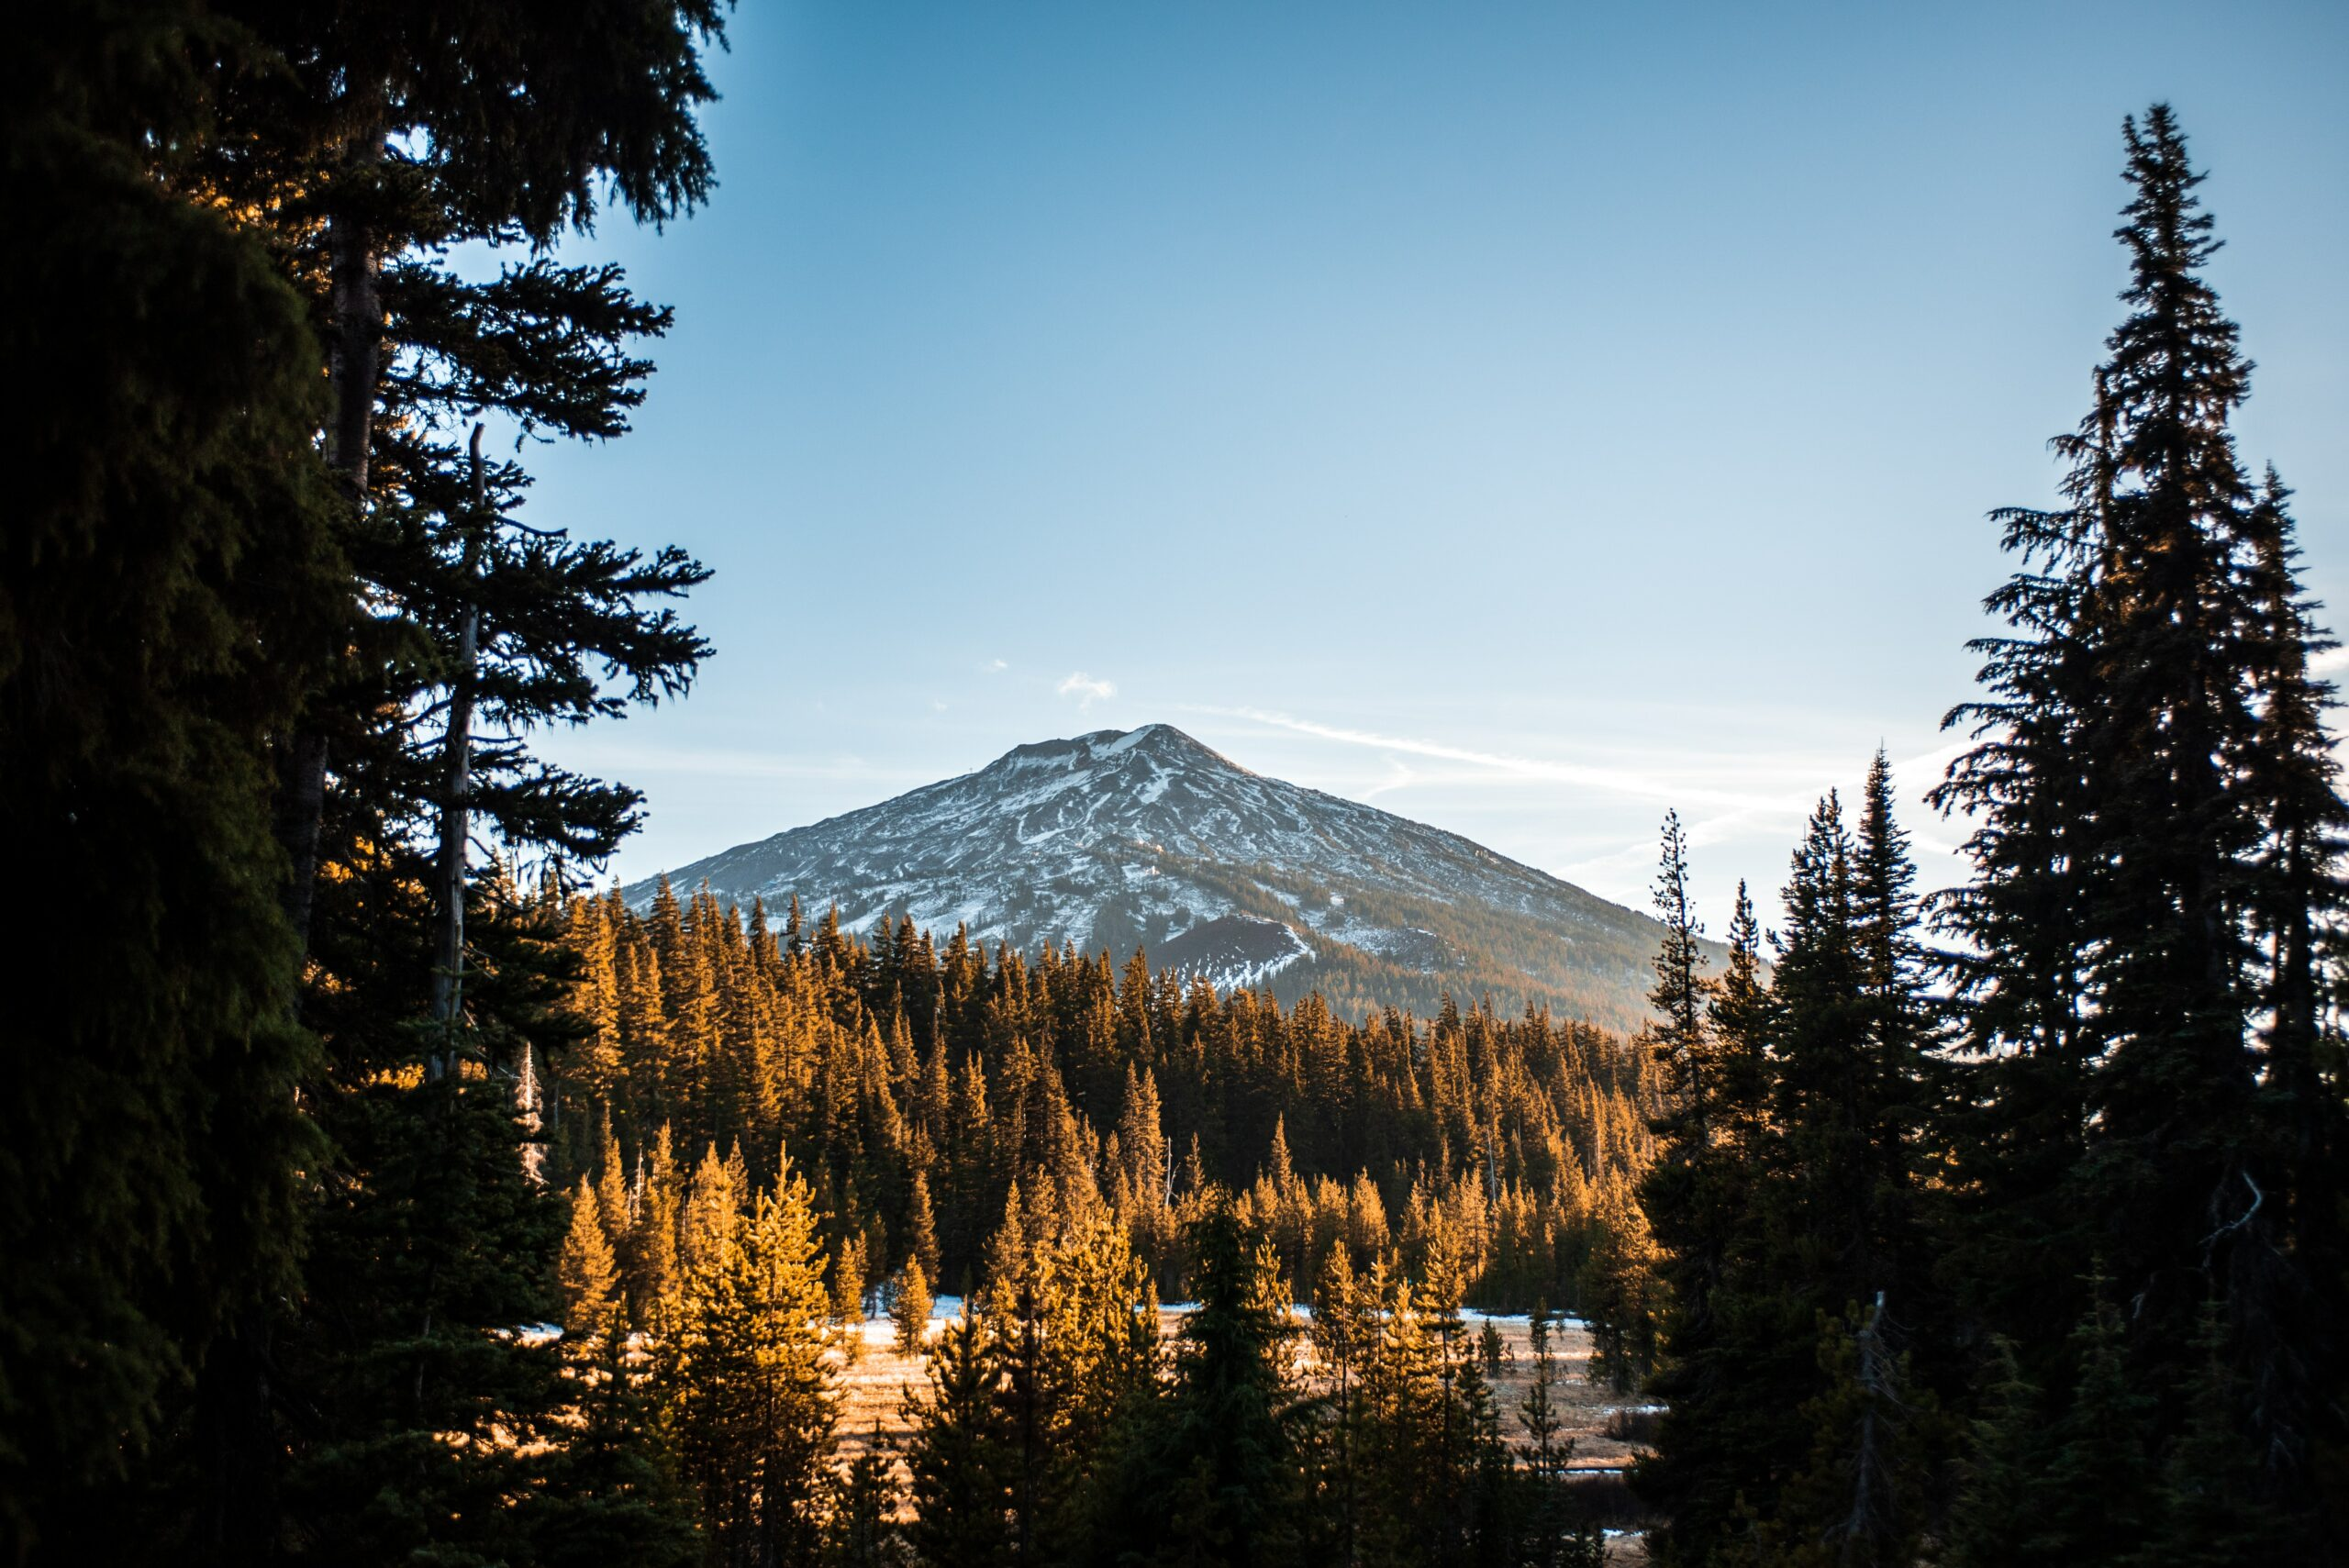 A mountain lit by a sunset - hiking mountains is one of the things to do in Bend, Oregon